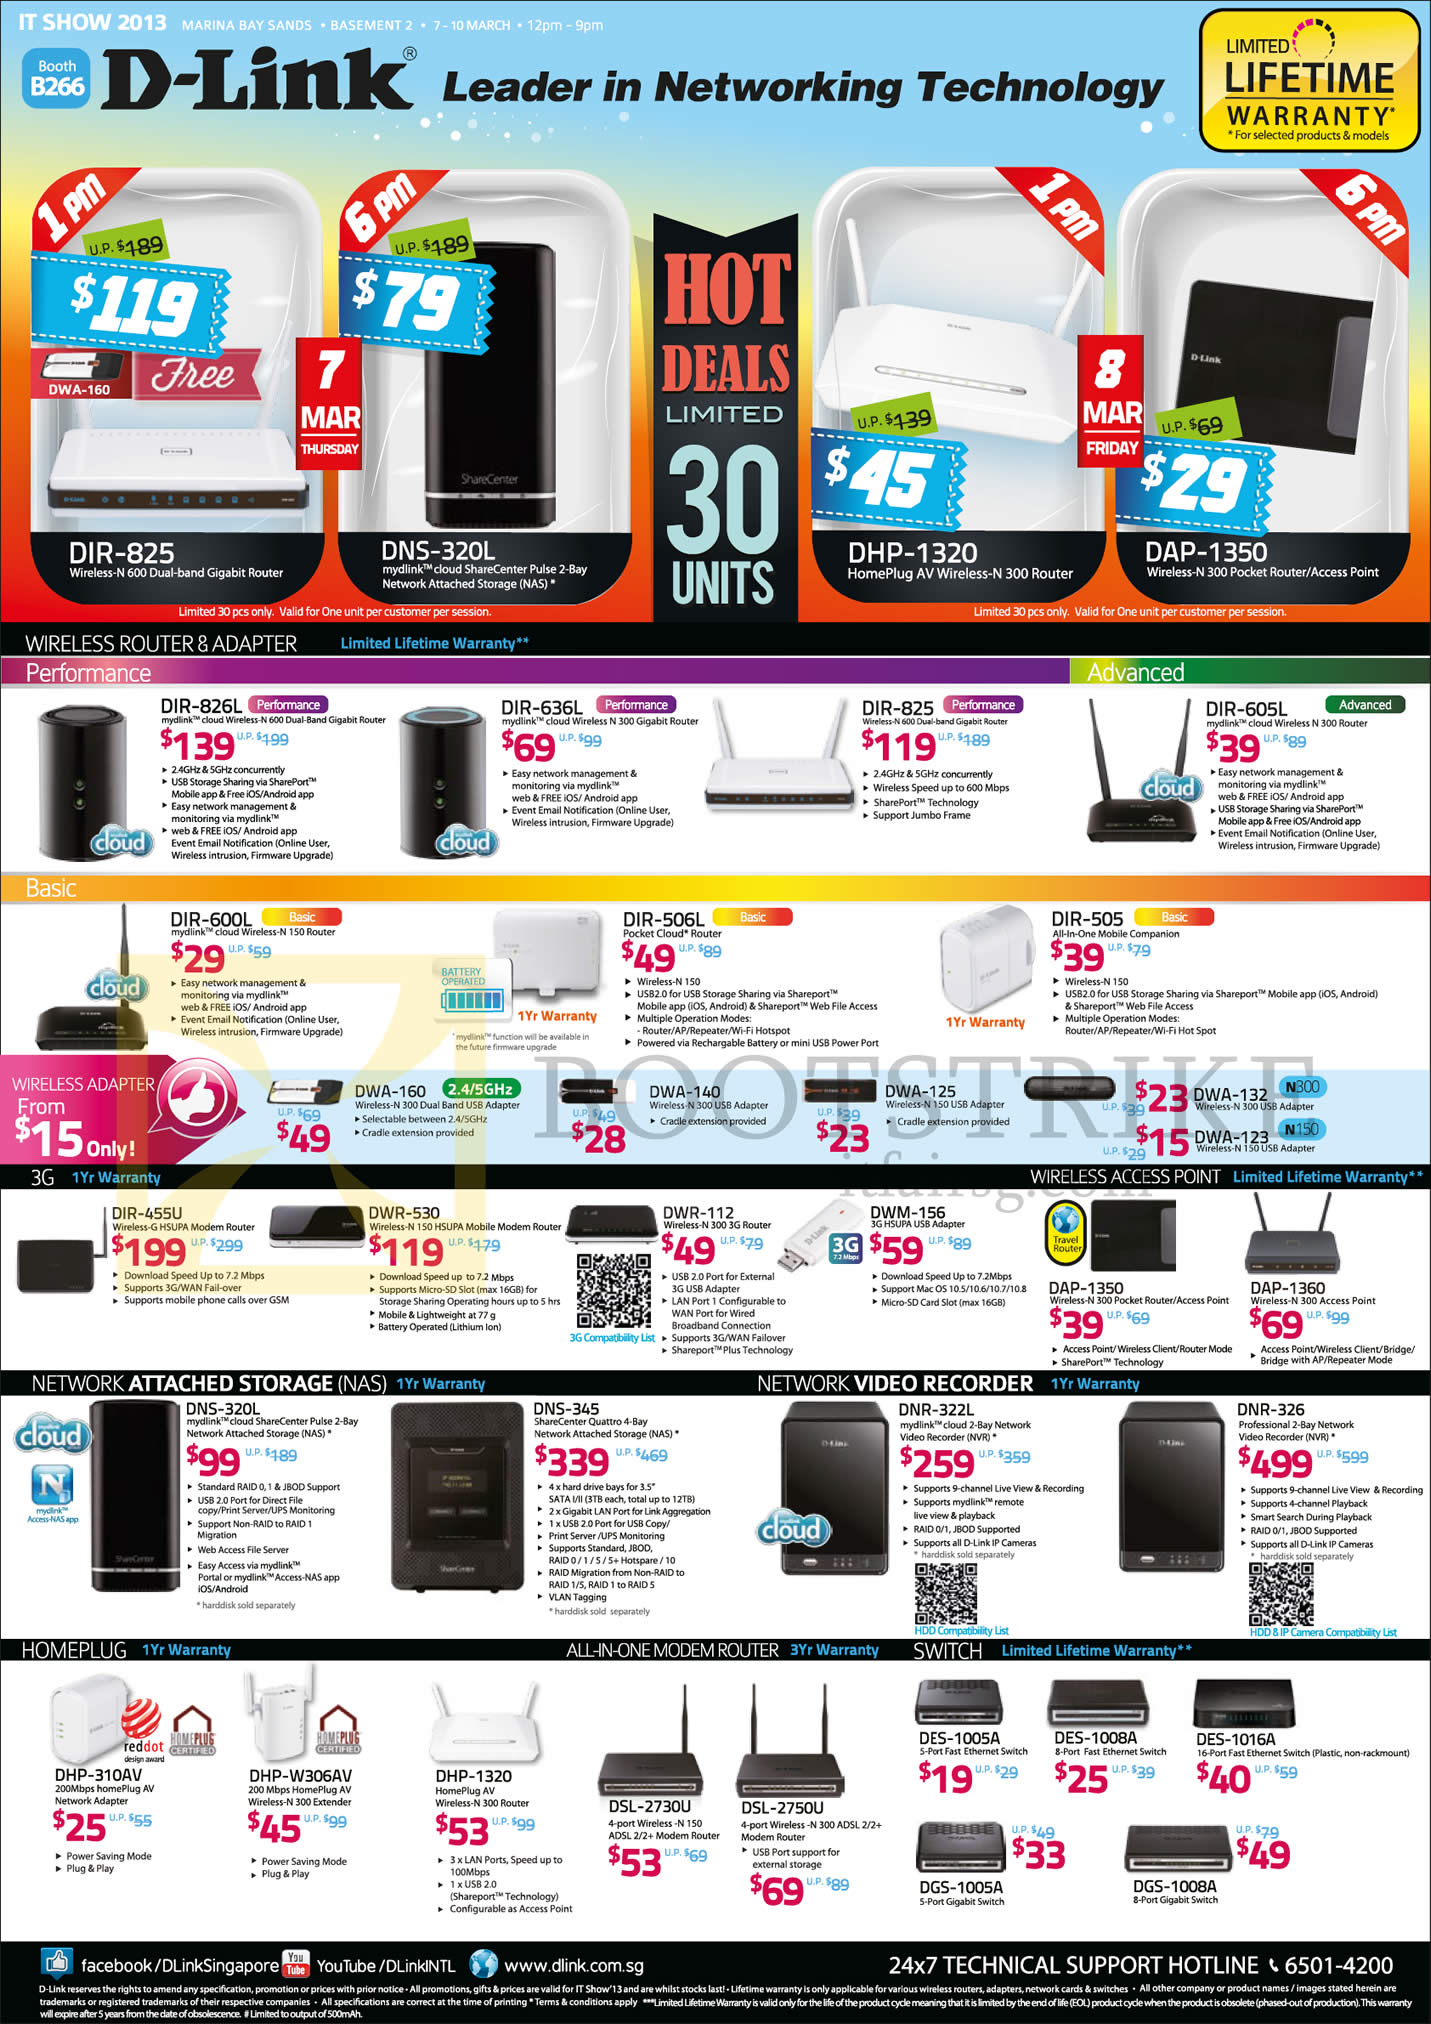 IT SHOW 2013 price list image brochure of D-Link Networking Wireless Router DIR, USB Adapter, 3G, 4G, Access Point, NAS, Network Video Recorder, HomePlug AV, ADSL2 Modem Router, Switch